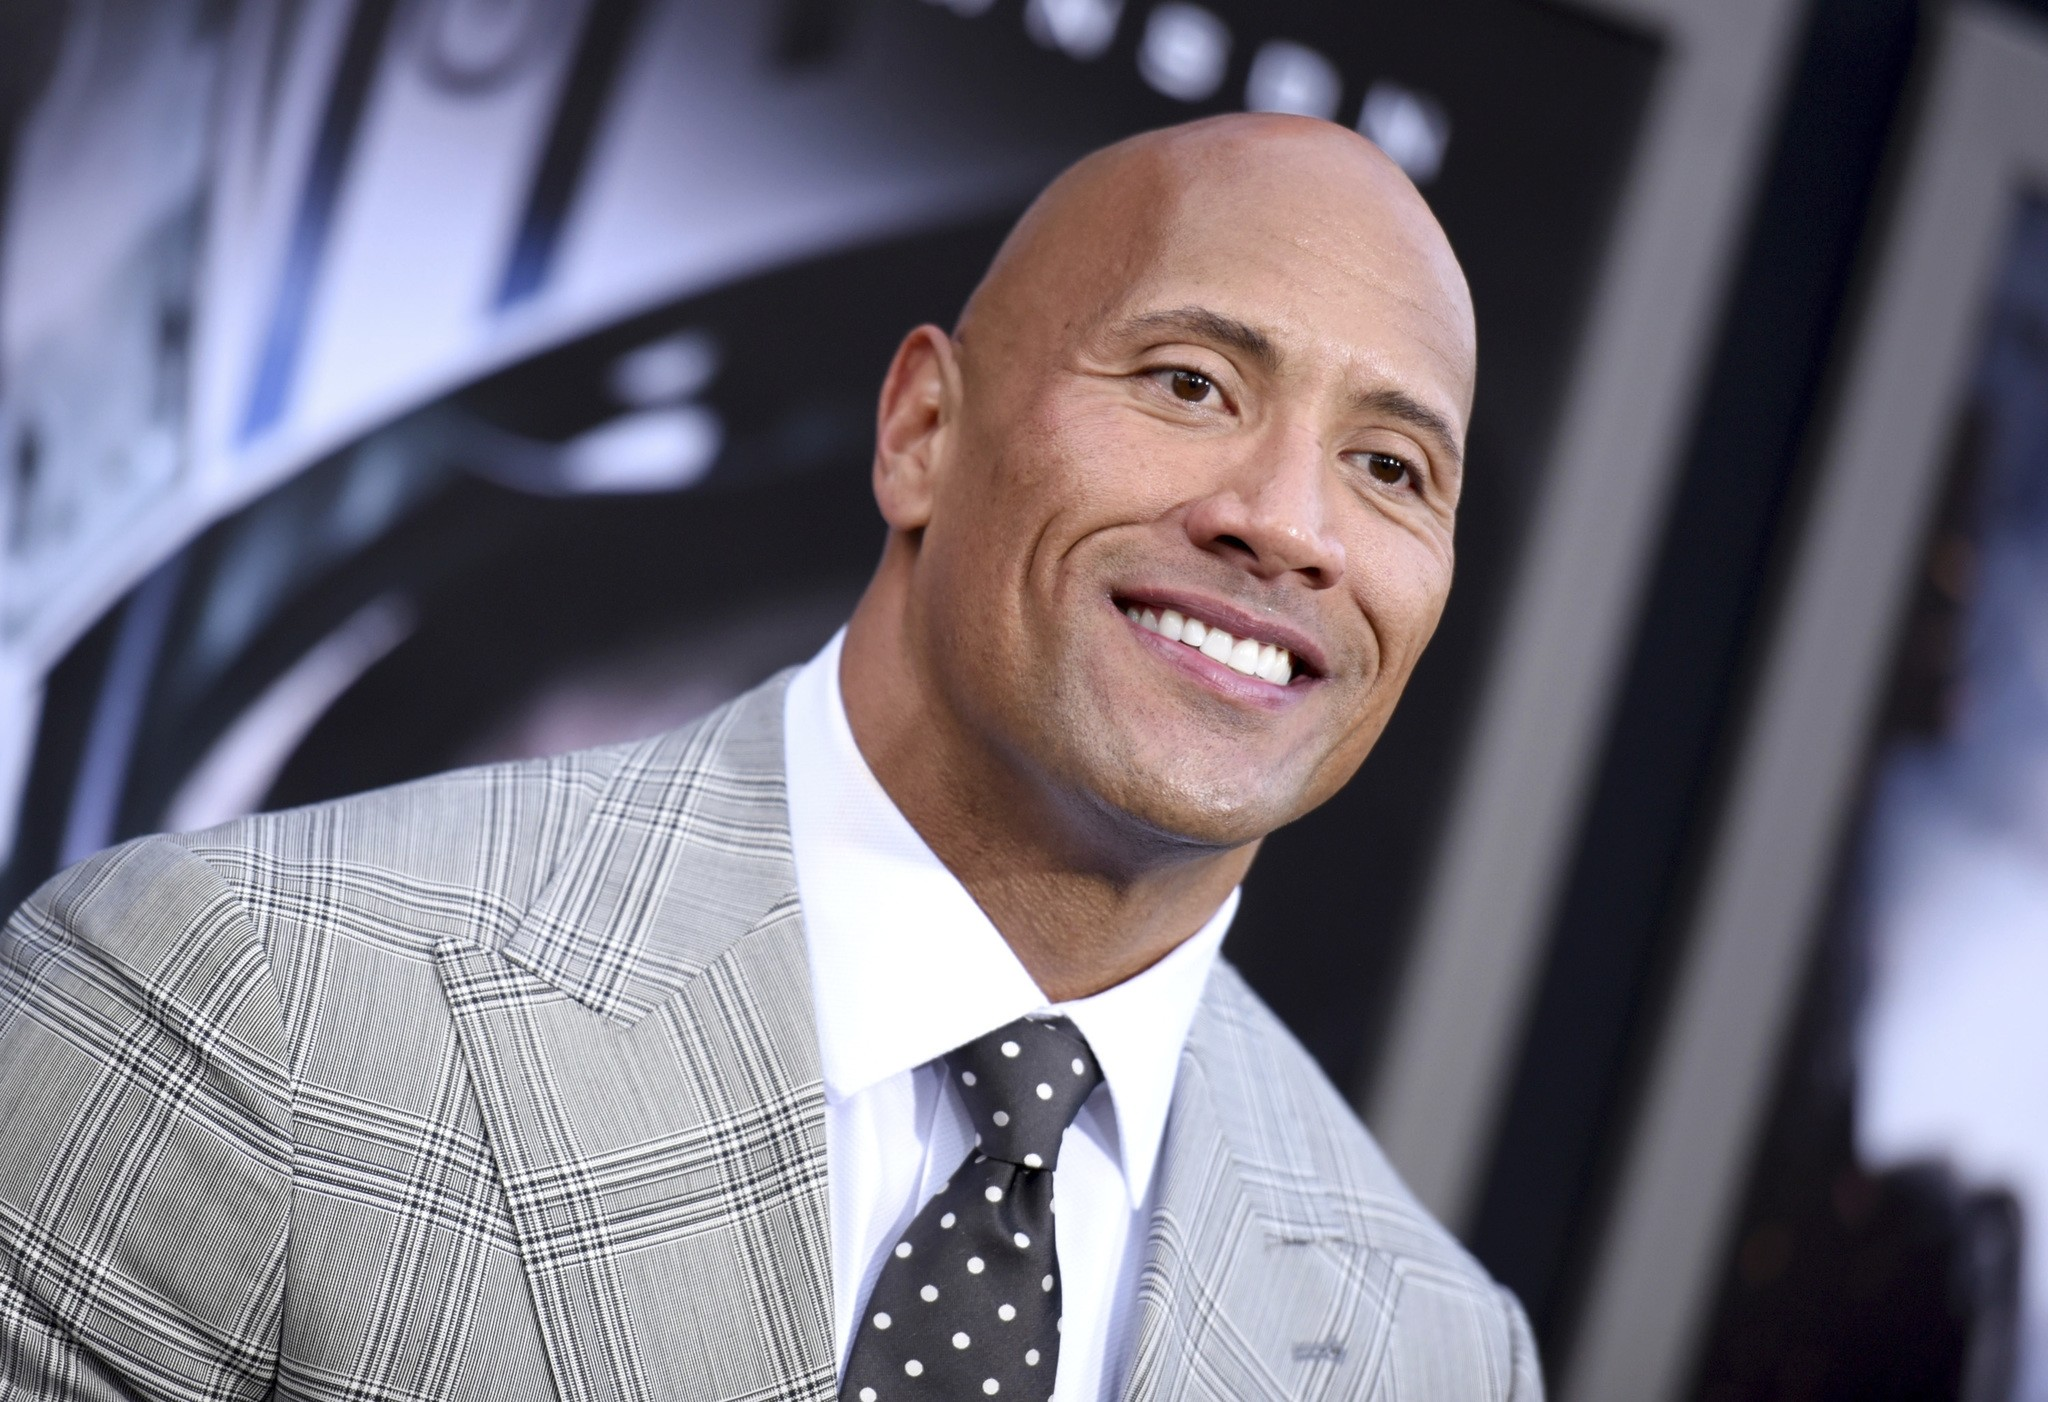 In this May 26, 2015, file photo, Dwayne Johnson arrives at the premiere of ,San Andreas, at the TCL Chinese Theatre in Los Angeles. (AP Photo)